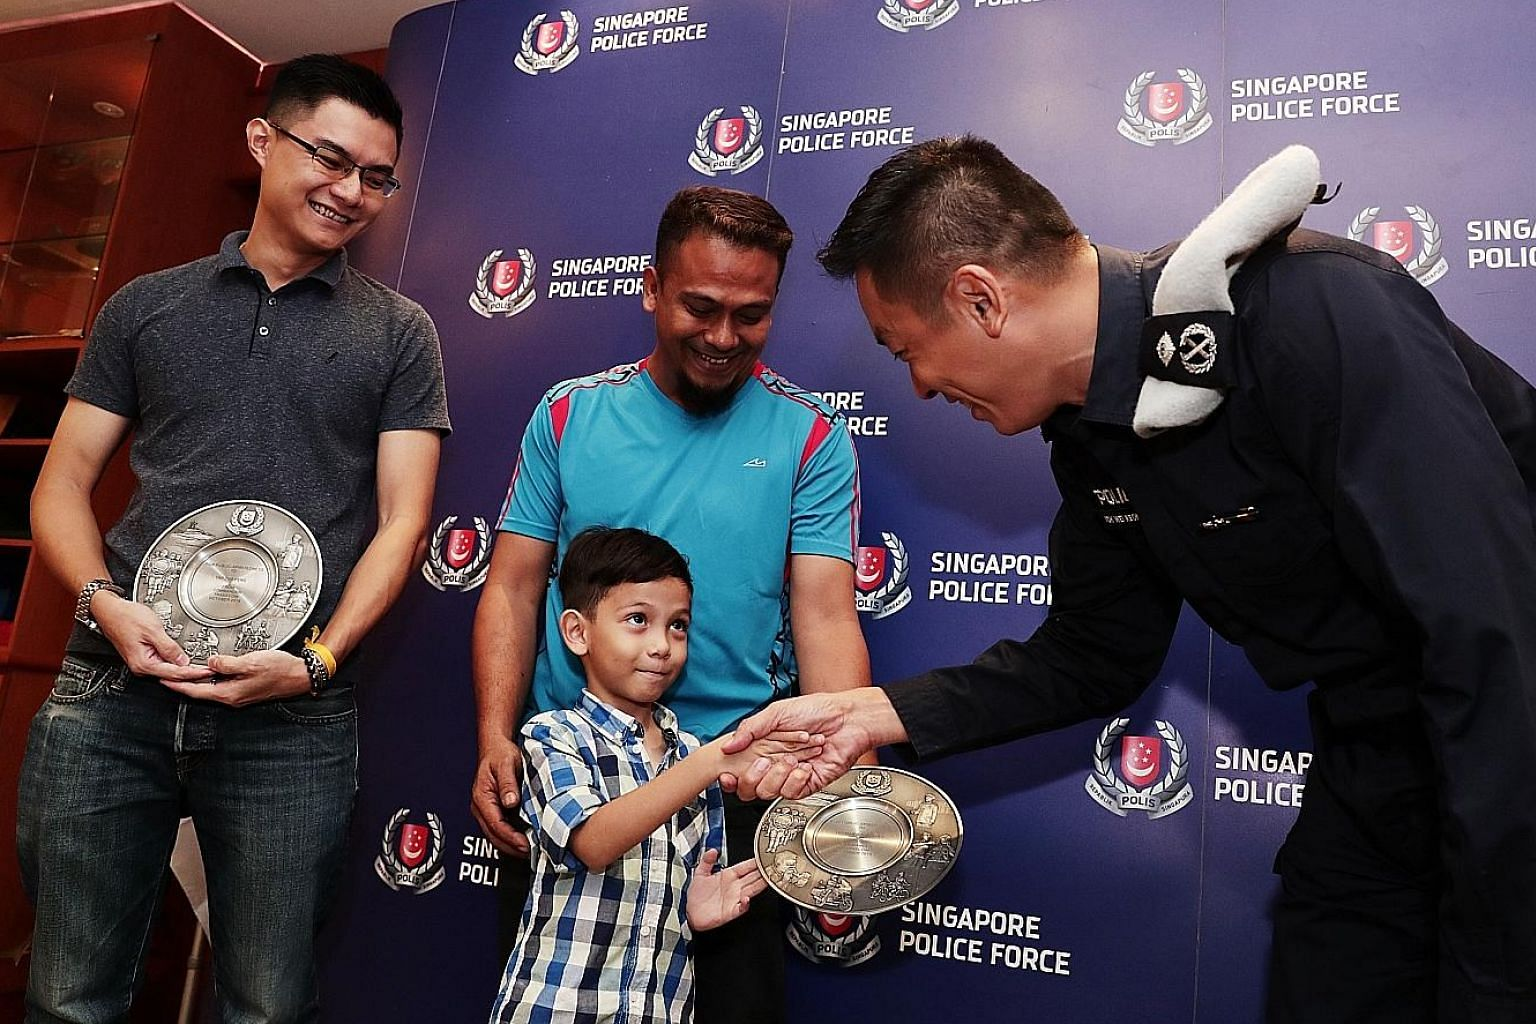 Five-year-old Mohd Ashqil, with his father Yusman Yusoff behind him, greeting Public Transport Security Command Commander Koh Wei Keong at the award ceremony yesterday. Mr Yusman and Mr Yap Zuo Peng (left) both received the Public Spiritedness Award